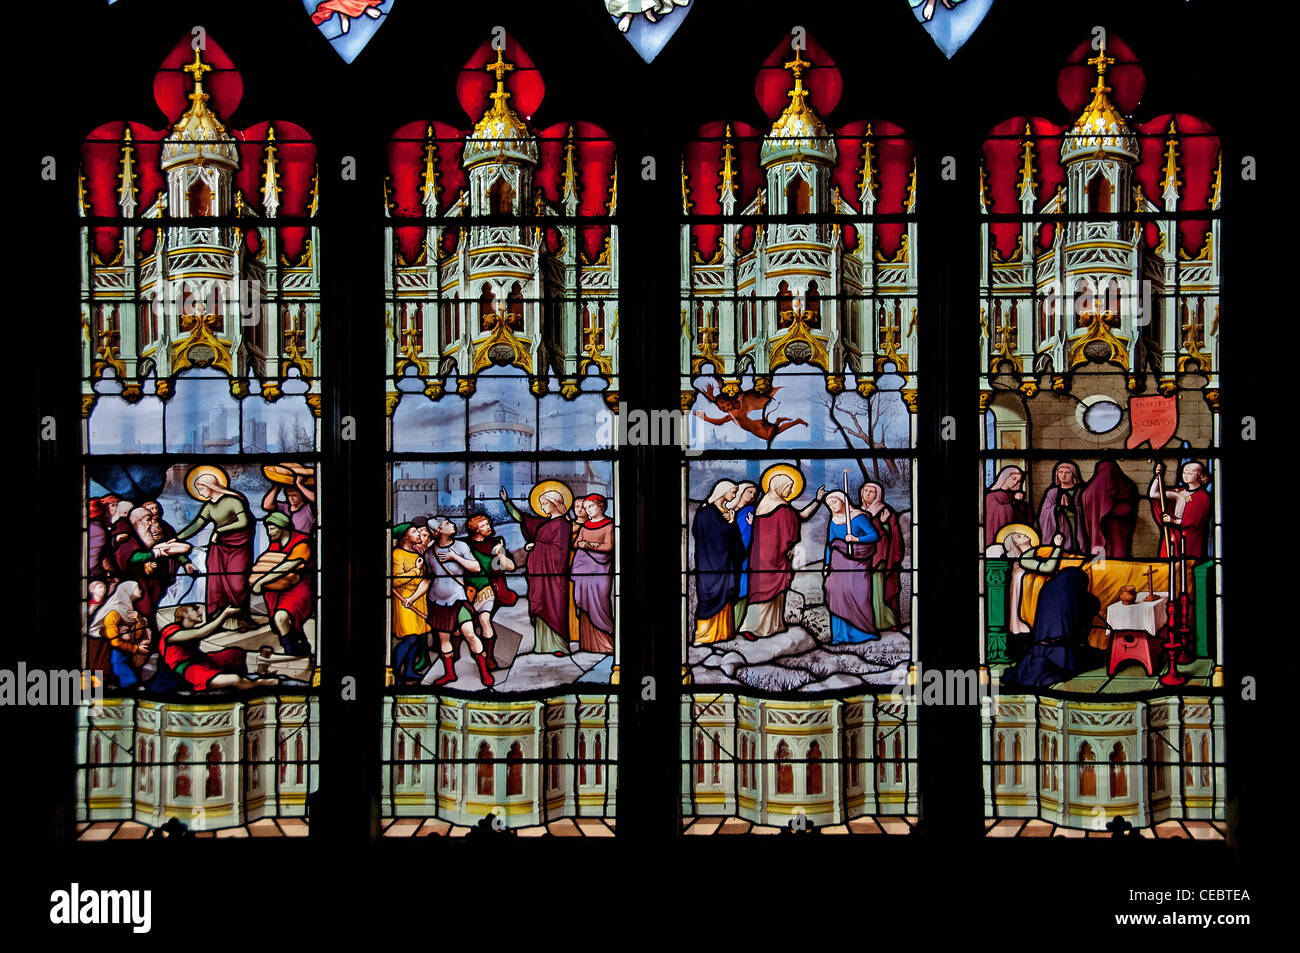 stained glass window Saint Étienne du Mont is a church in Paris France Stock Photo